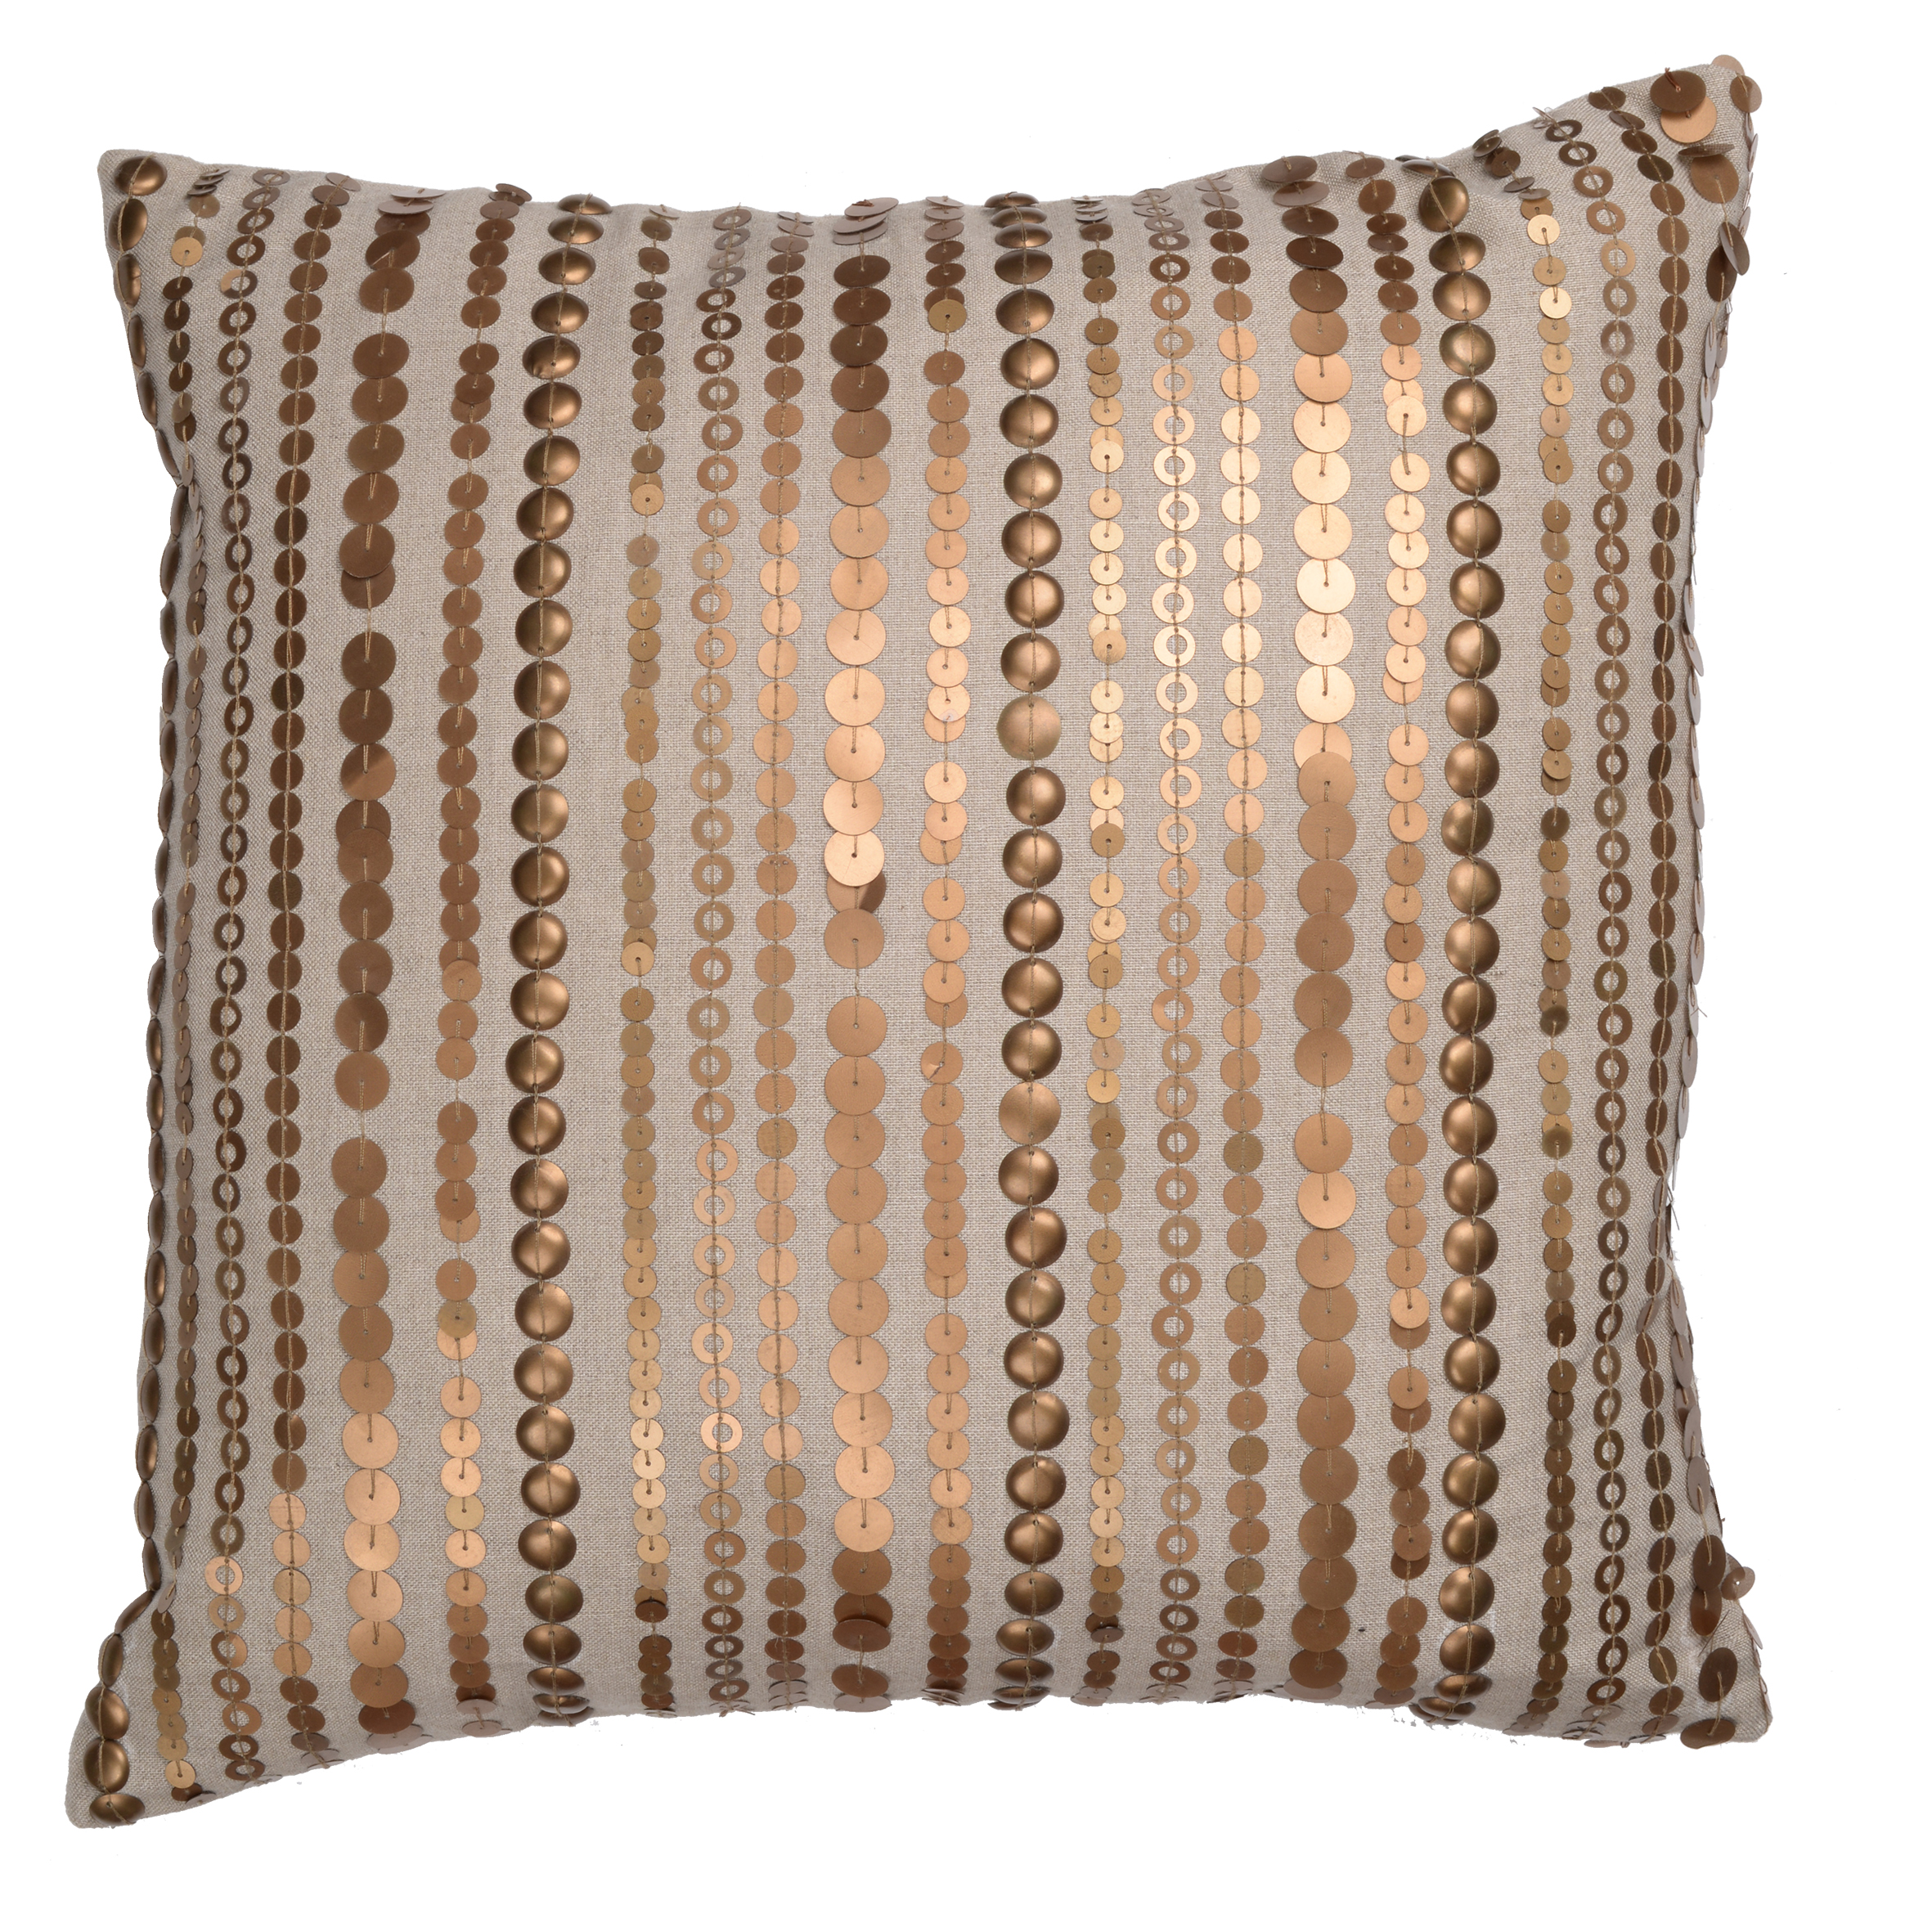 A&B Home Dashiell Copper Beaded Throw Pillow, Linen, 18 by 18-Inch by A&B Home